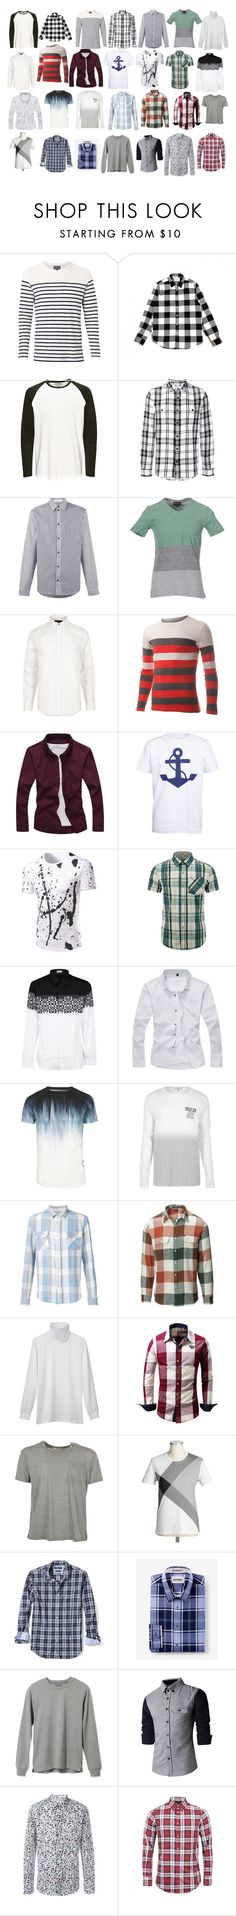 """""""Men's shirts"""" by asherthecrimsonfox ❤ liked on Polyvore featuring Witchery, Edwin, J.W. Anderson, Emporio Armani, River Island, Makia, Dior Homme, Levi's, Matix and Uniqlo"""